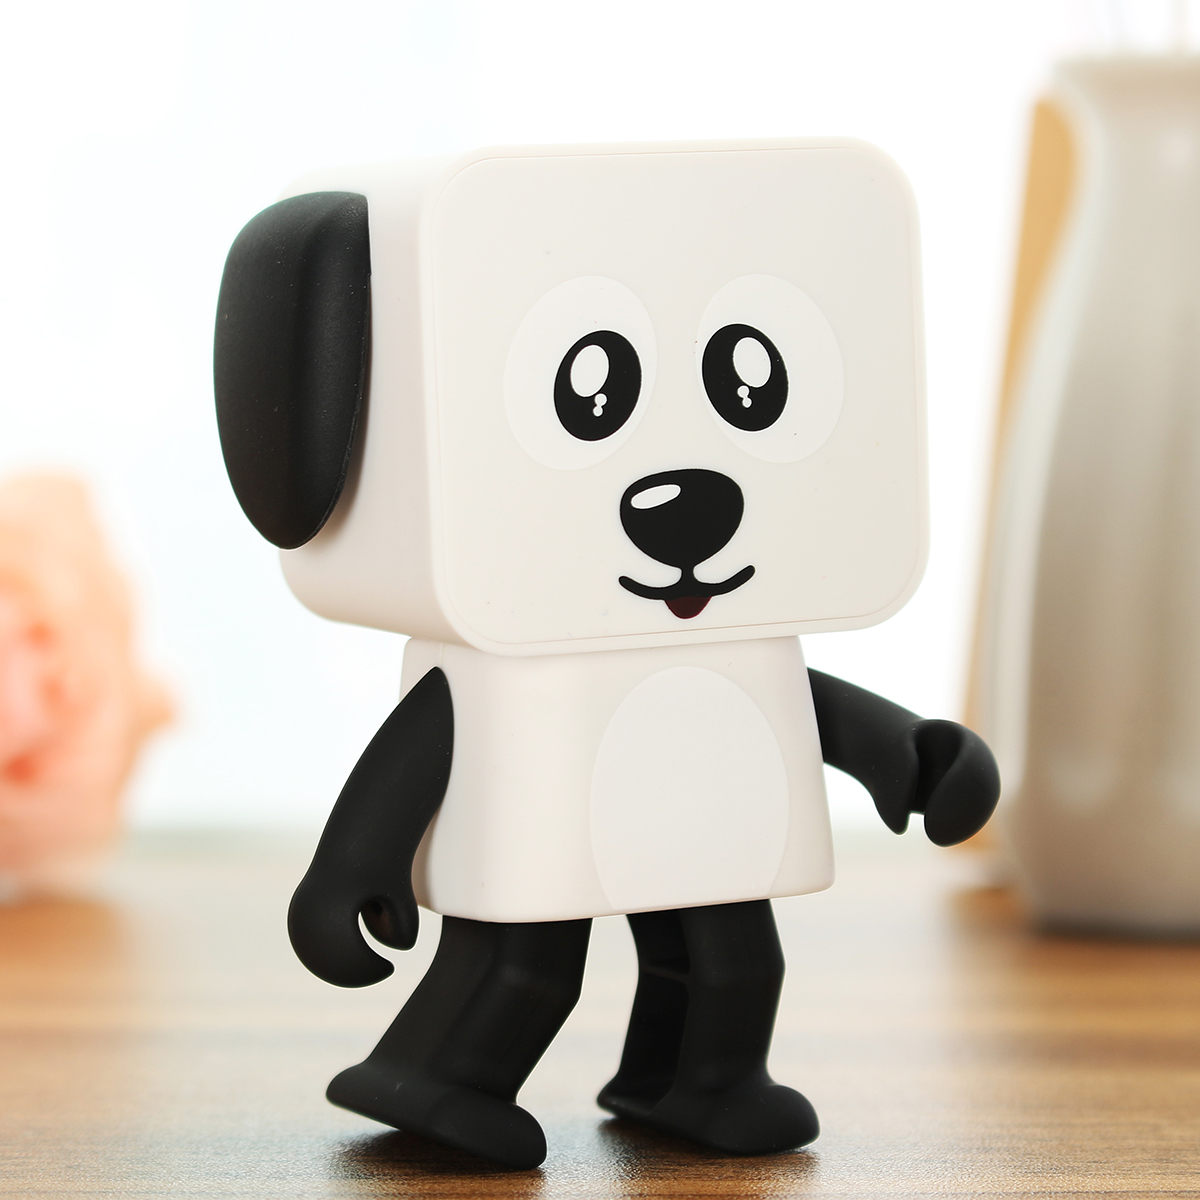 Multifunctional Wireless Bluetooth Speaker Portable Kids Toys Gifts Music Robot Danding Dog Speaker